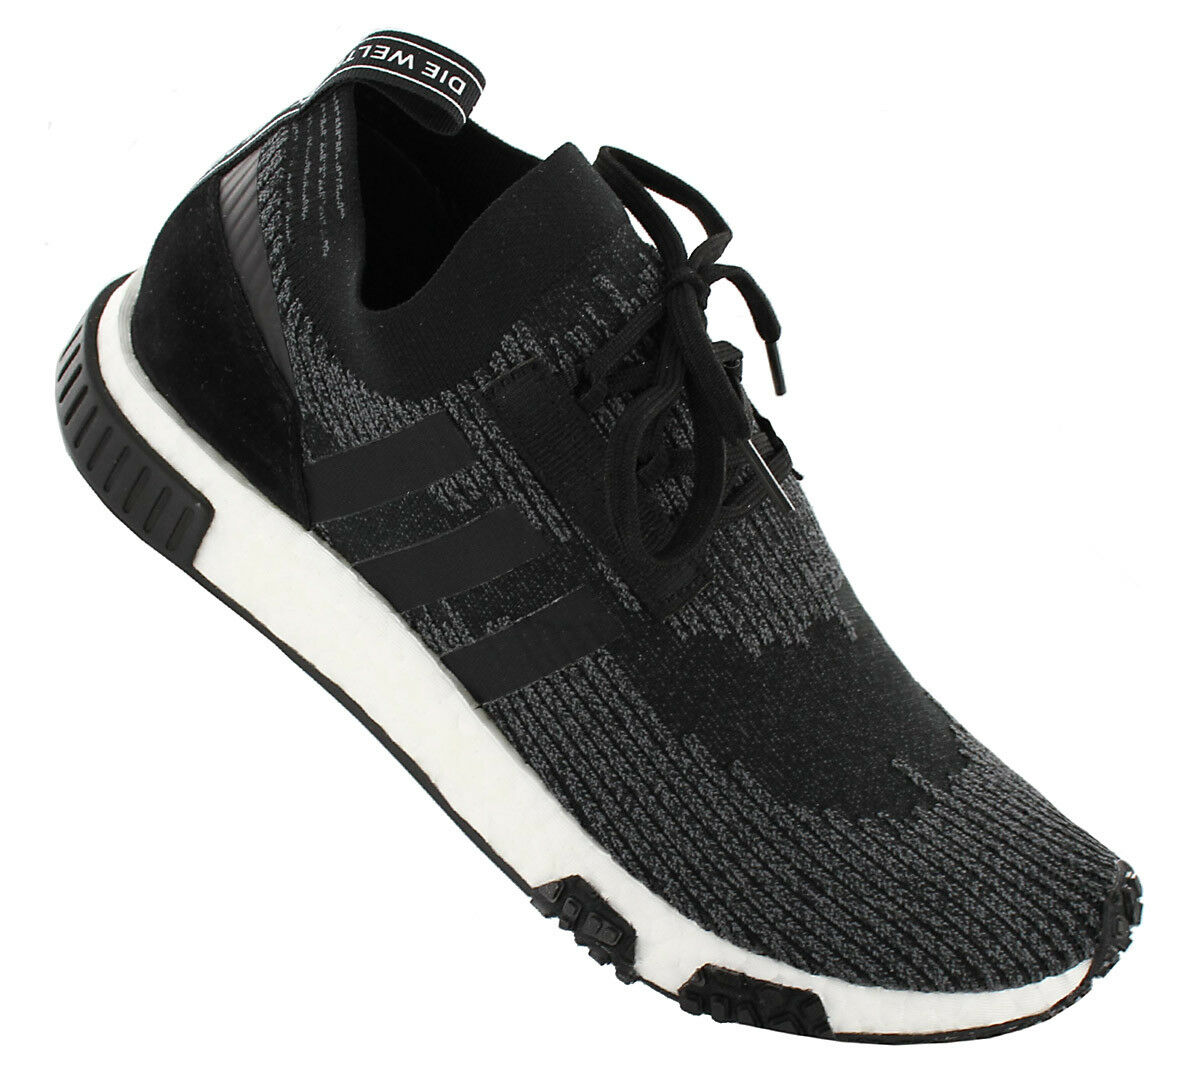 NEW adidas NMD Racer PK Primeknit AQ0949 Men''s shoes Trainers Sneakers SALE